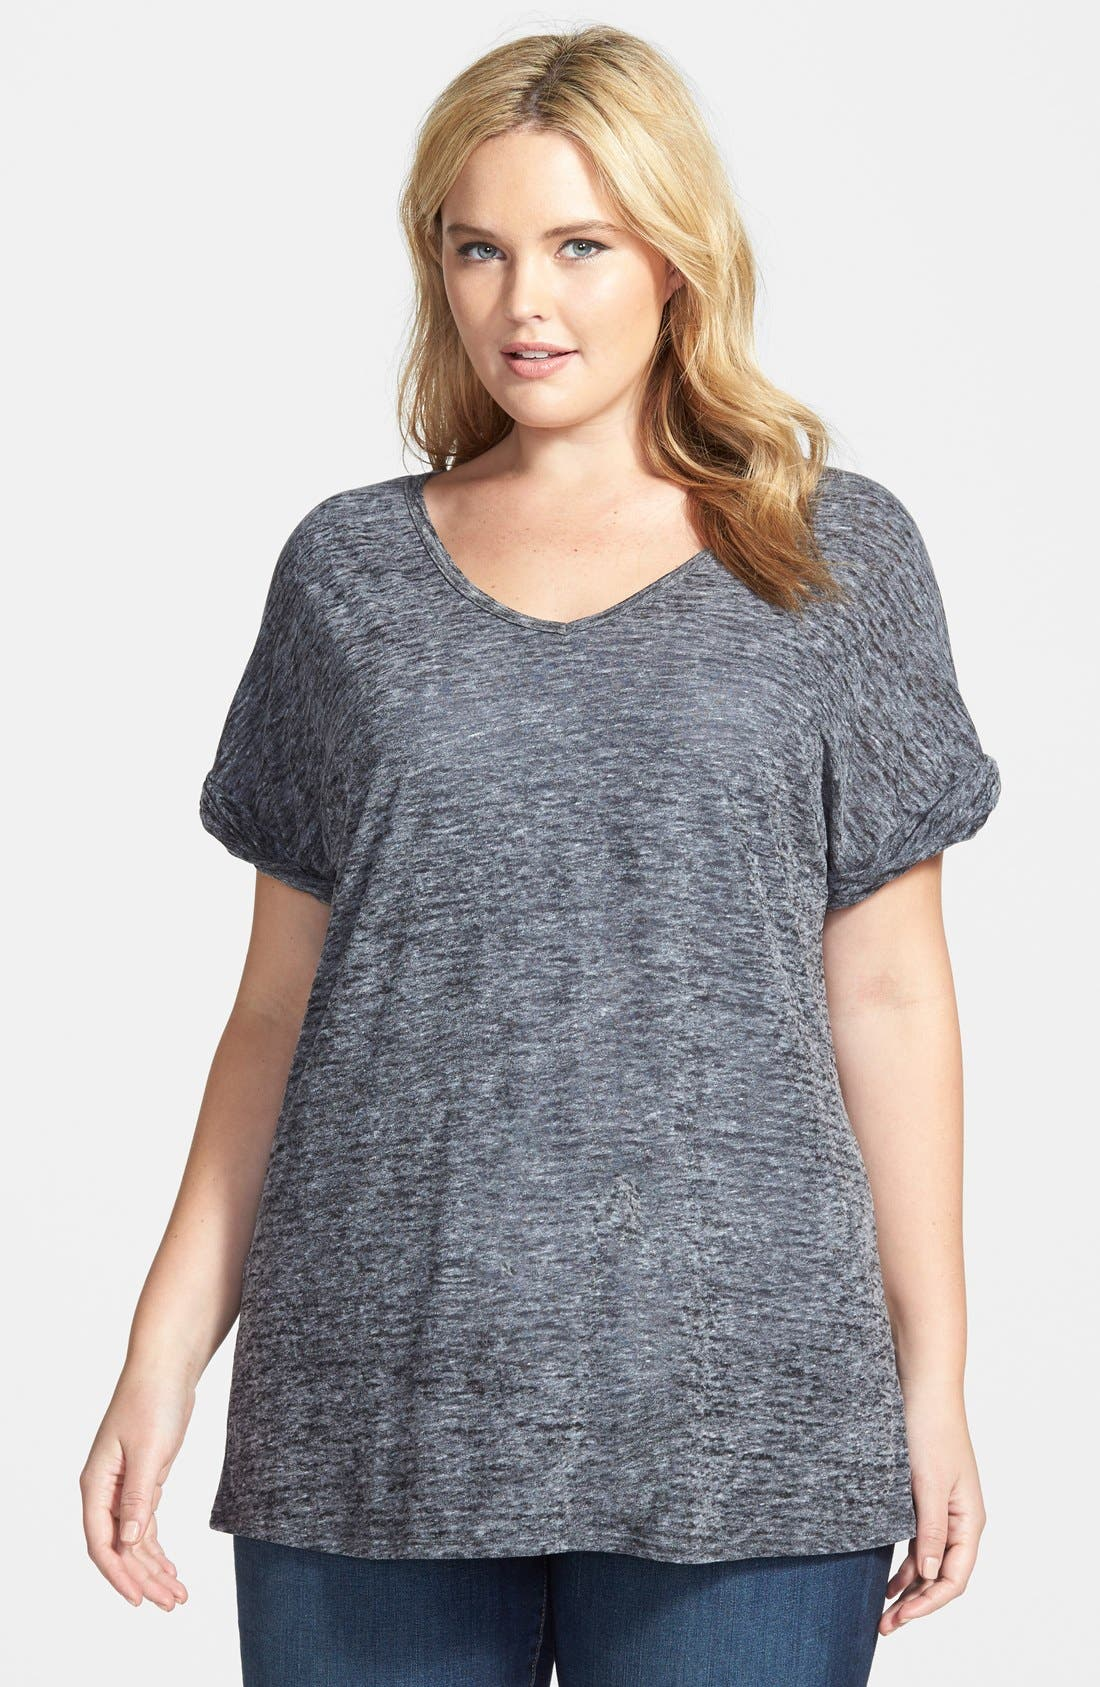 SEJOUR, Sheer Jersey V-Neck Tee, Main thumbnail 1, color, 001